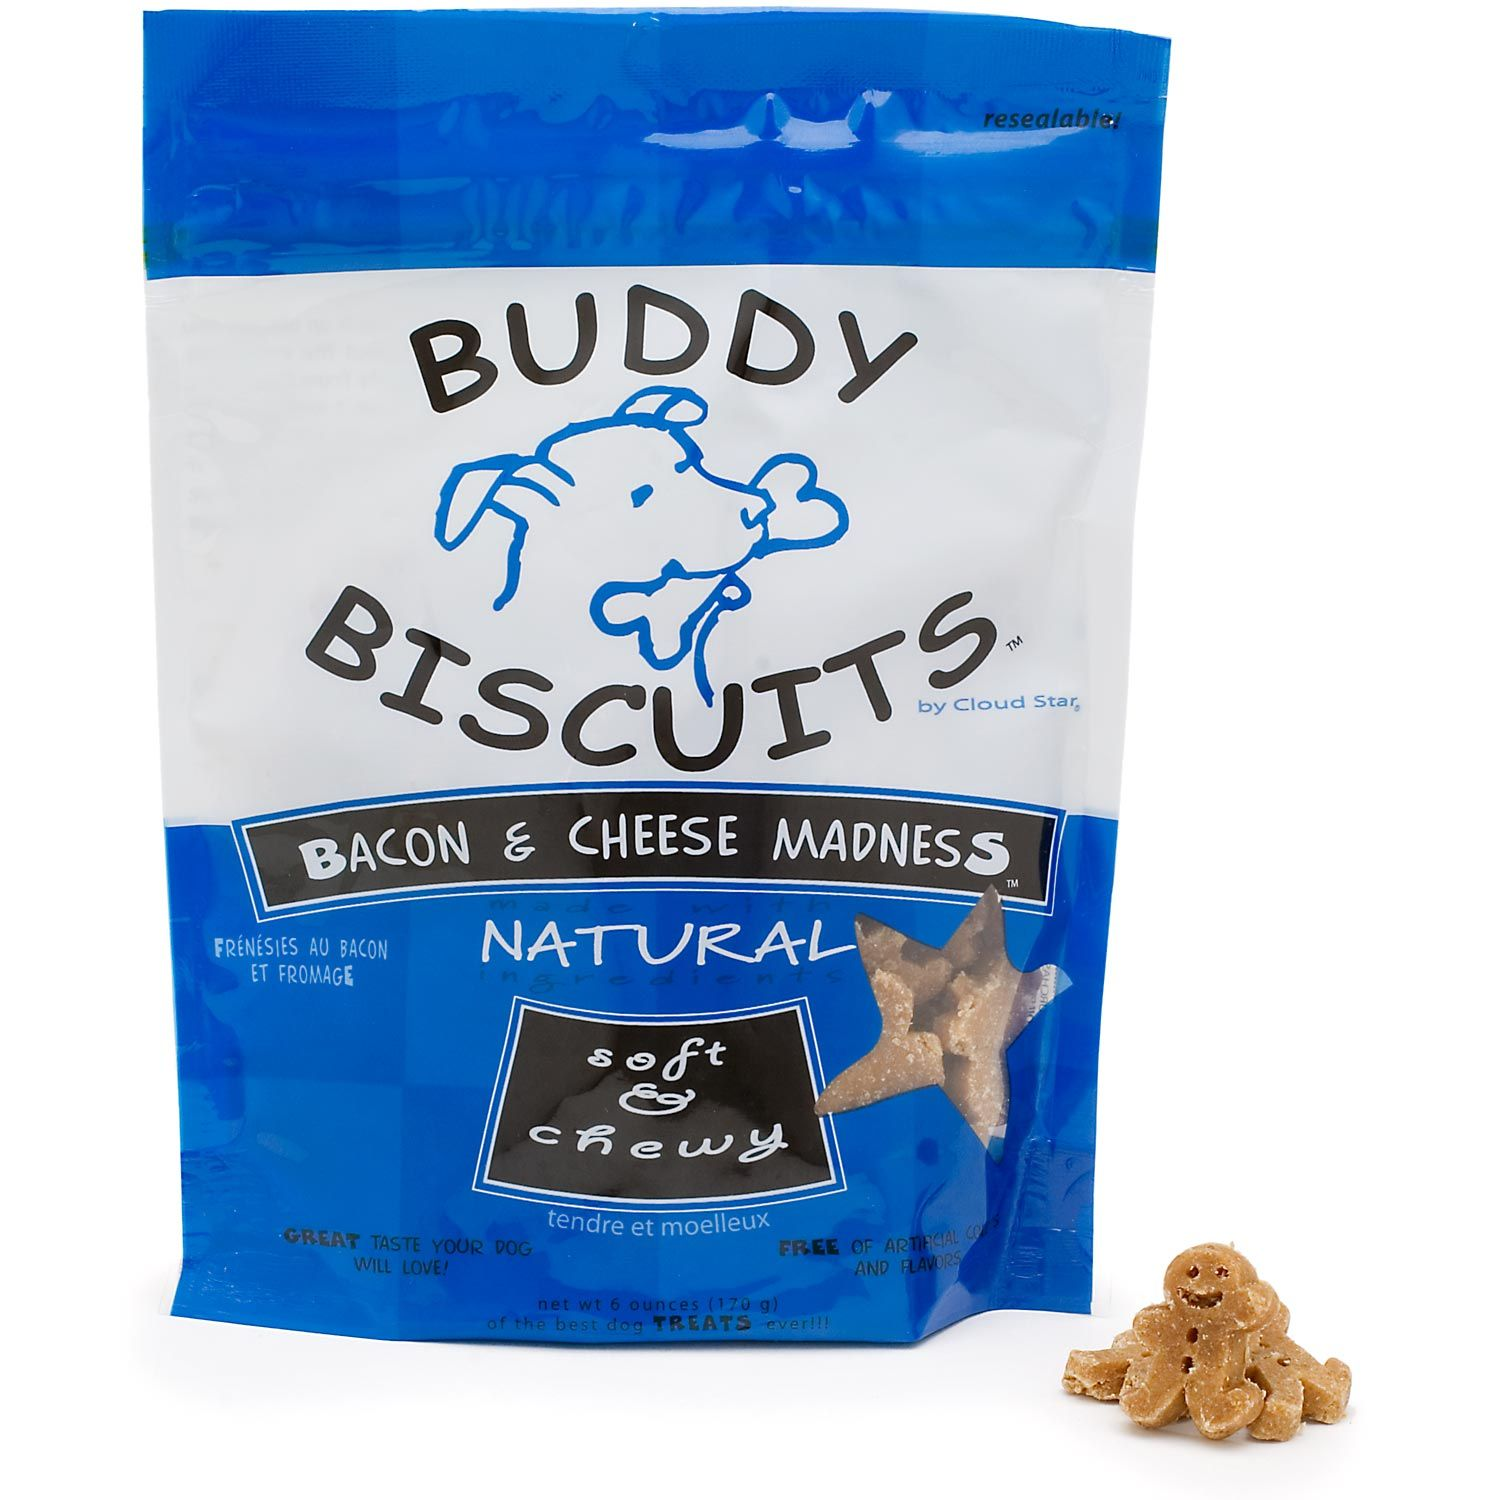 Moist buddy biscuits are easy to break into small pieces